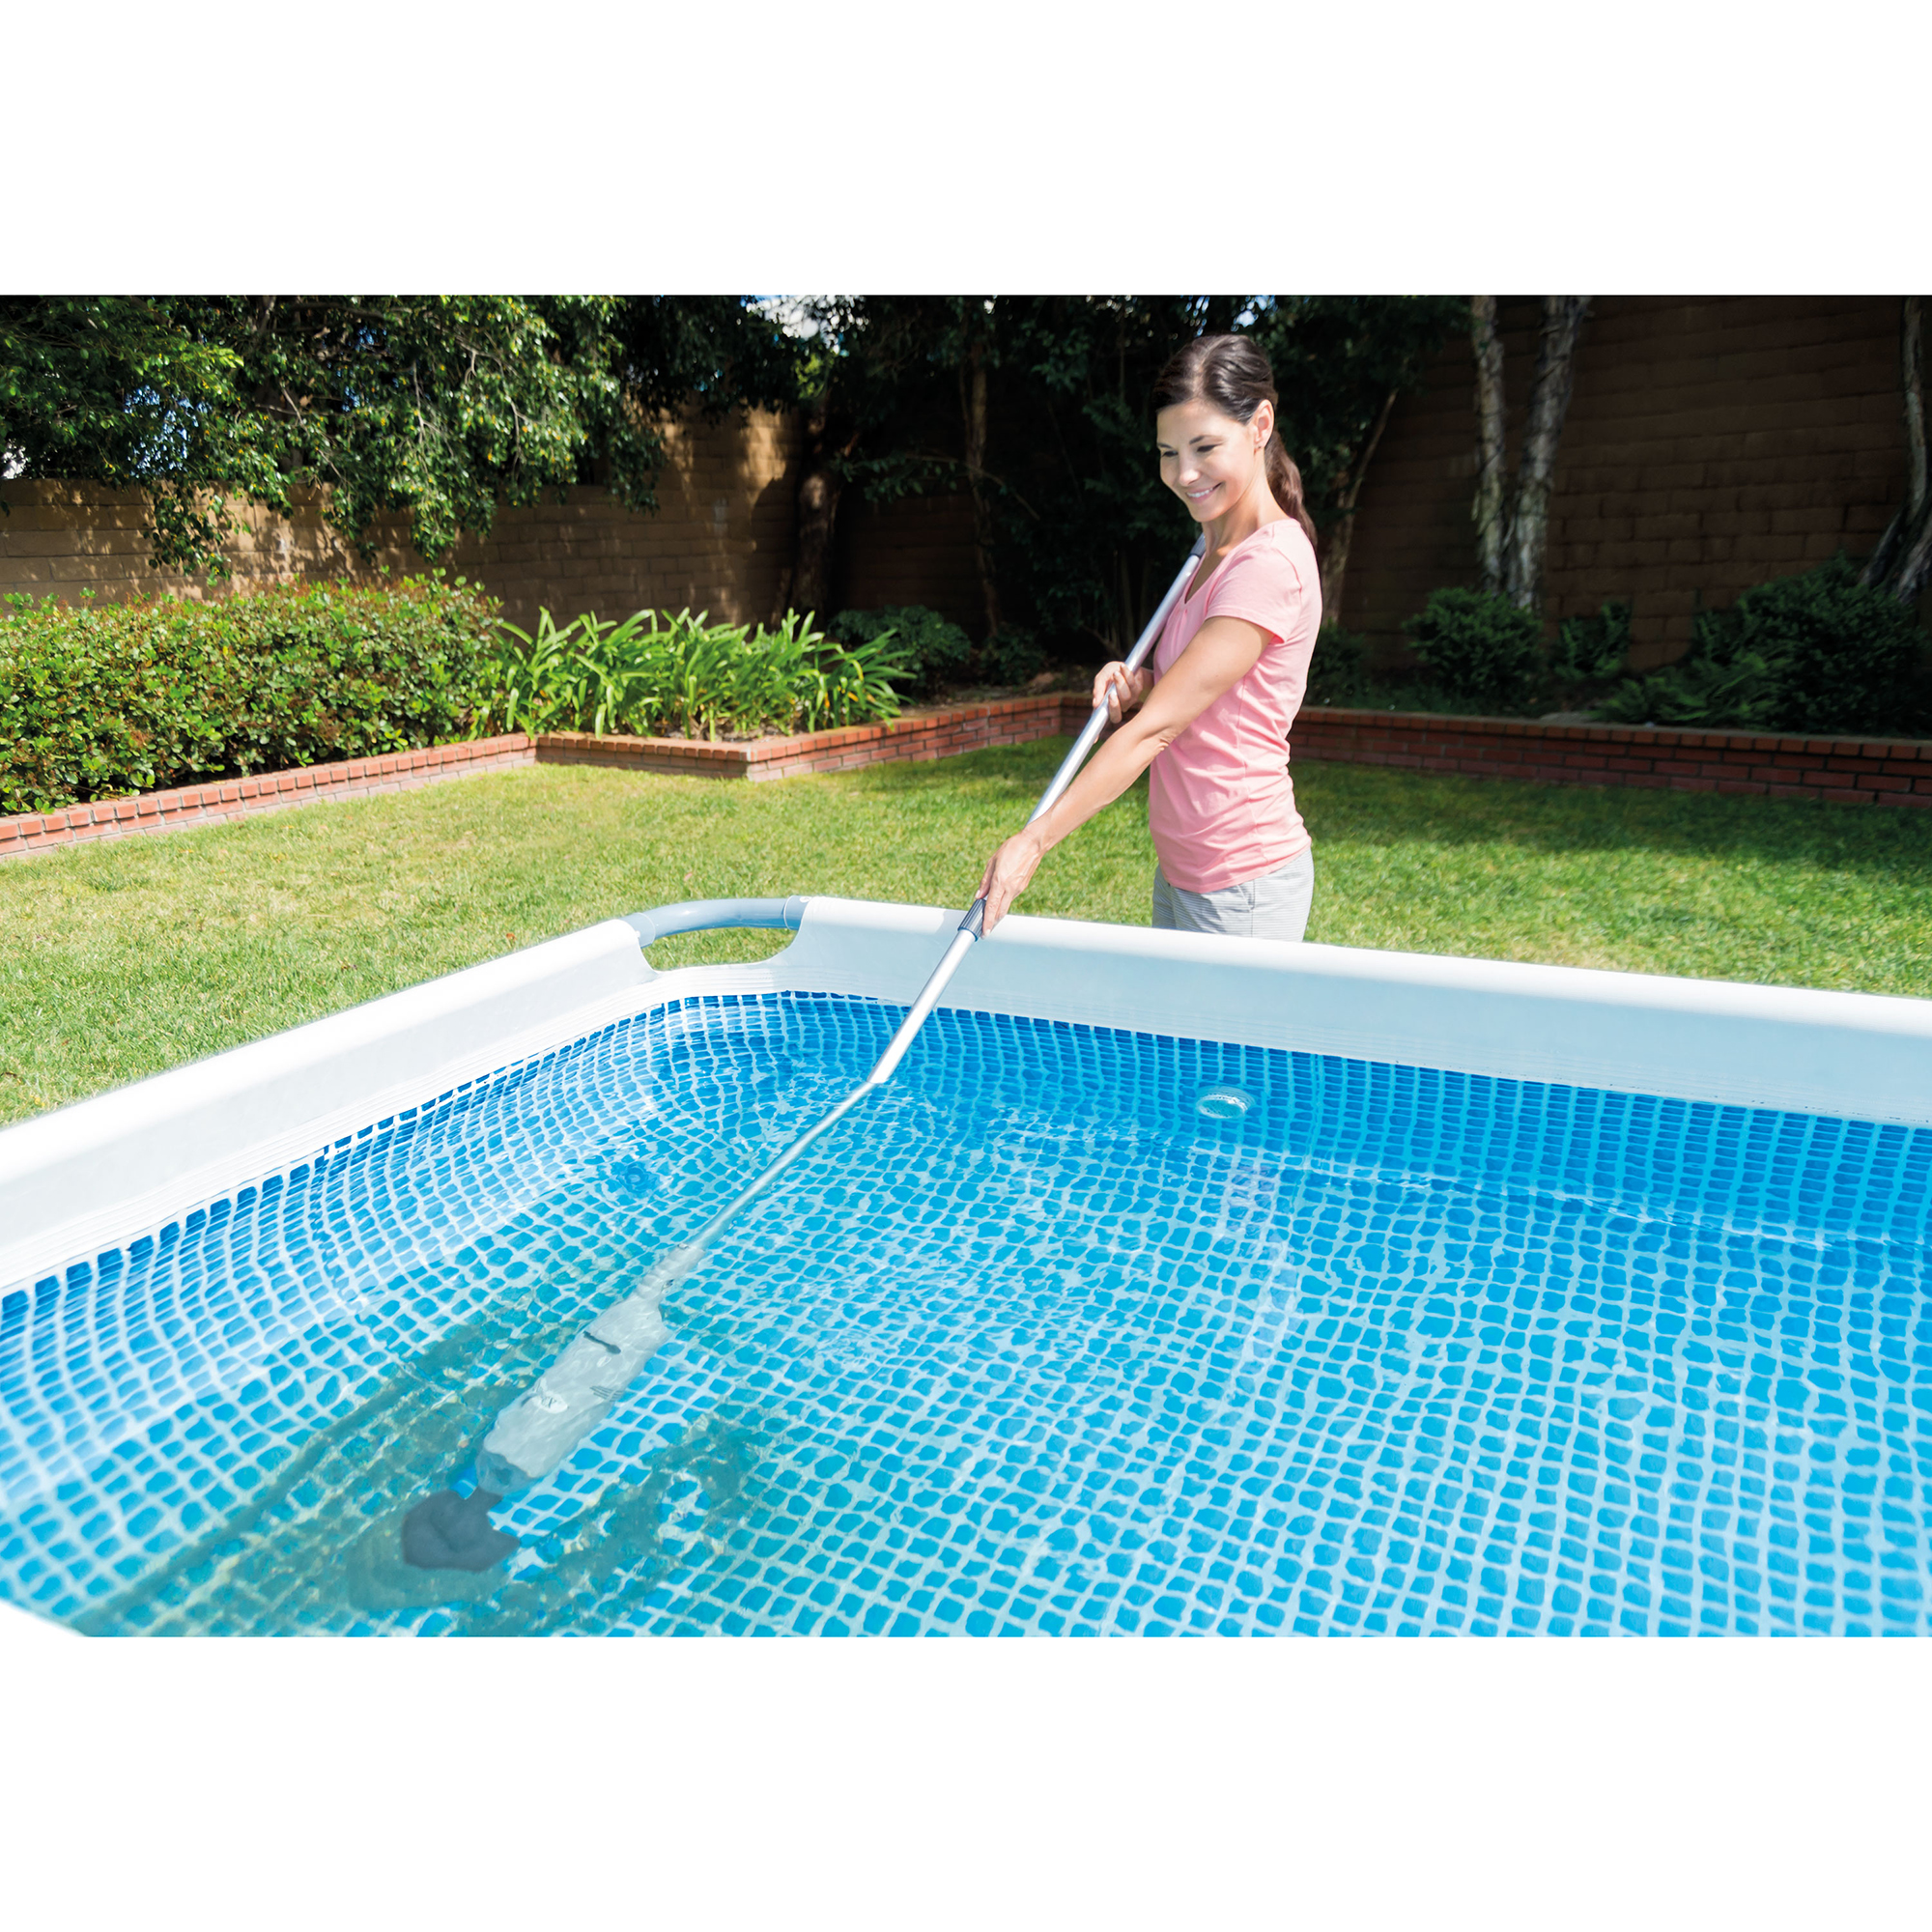 Intex cleaning above ground swimming pool rechargeable - Intex above ground swimming pools ...